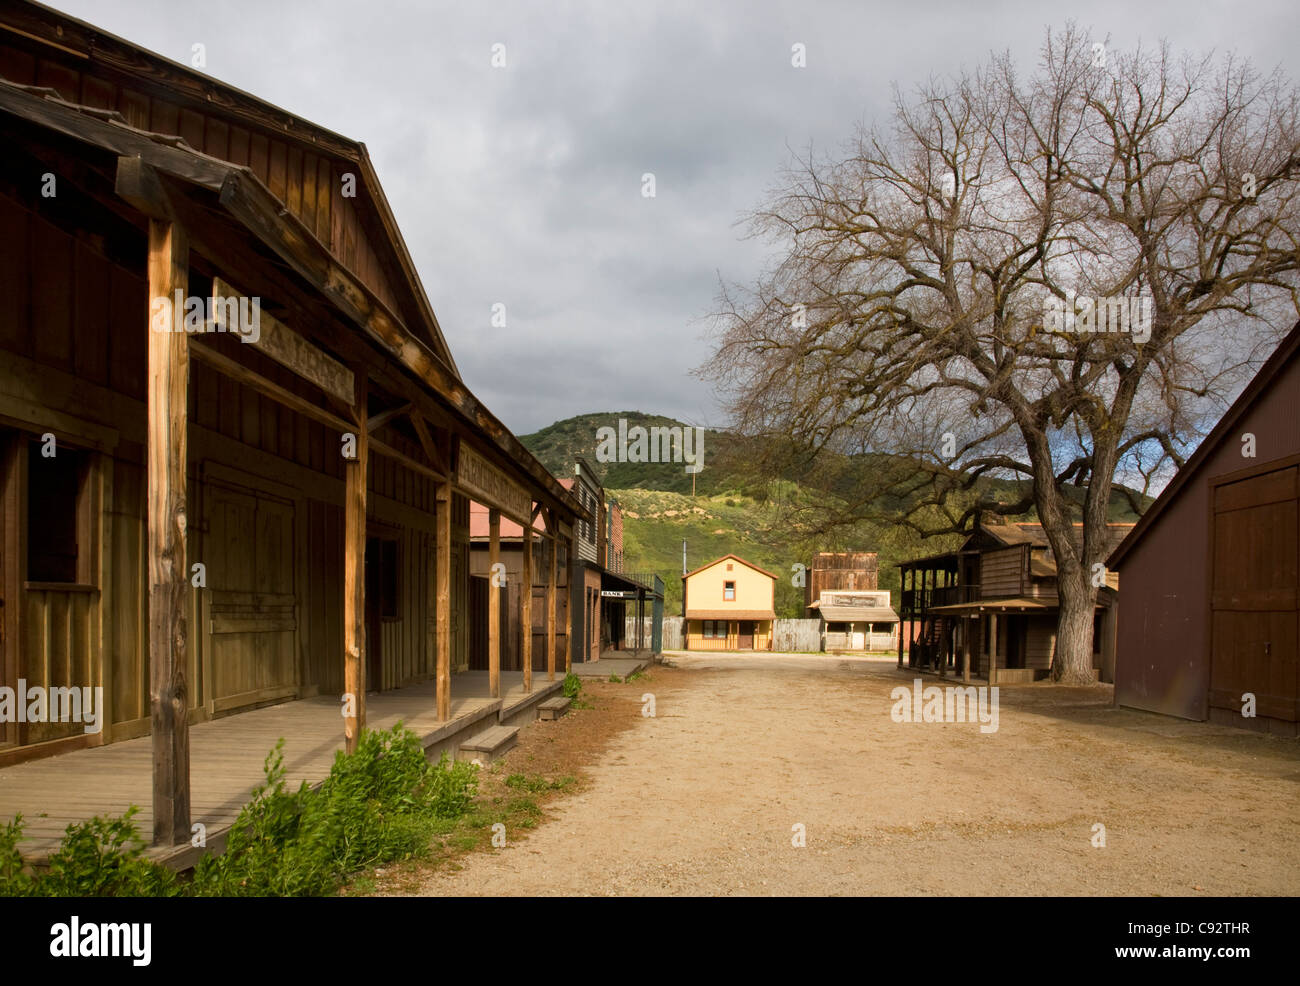 CALIFORNIA - Old western town built as a set at the Paramount Ranch in the Santa Monica Mountains National Recreation - Stock Image